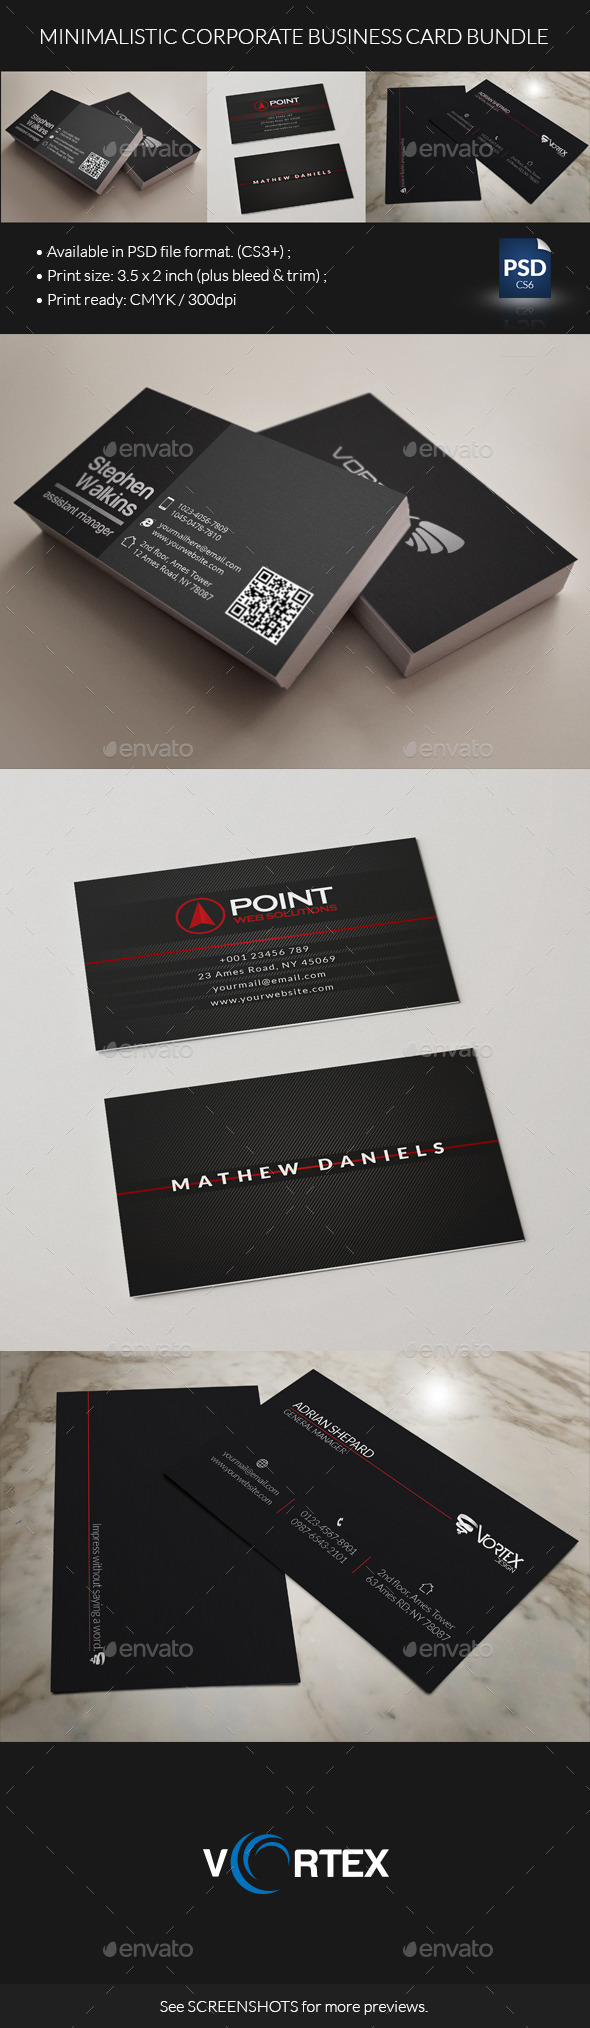 GraphicRiver Minimalistic Corporate Business Card Bundle 8817946